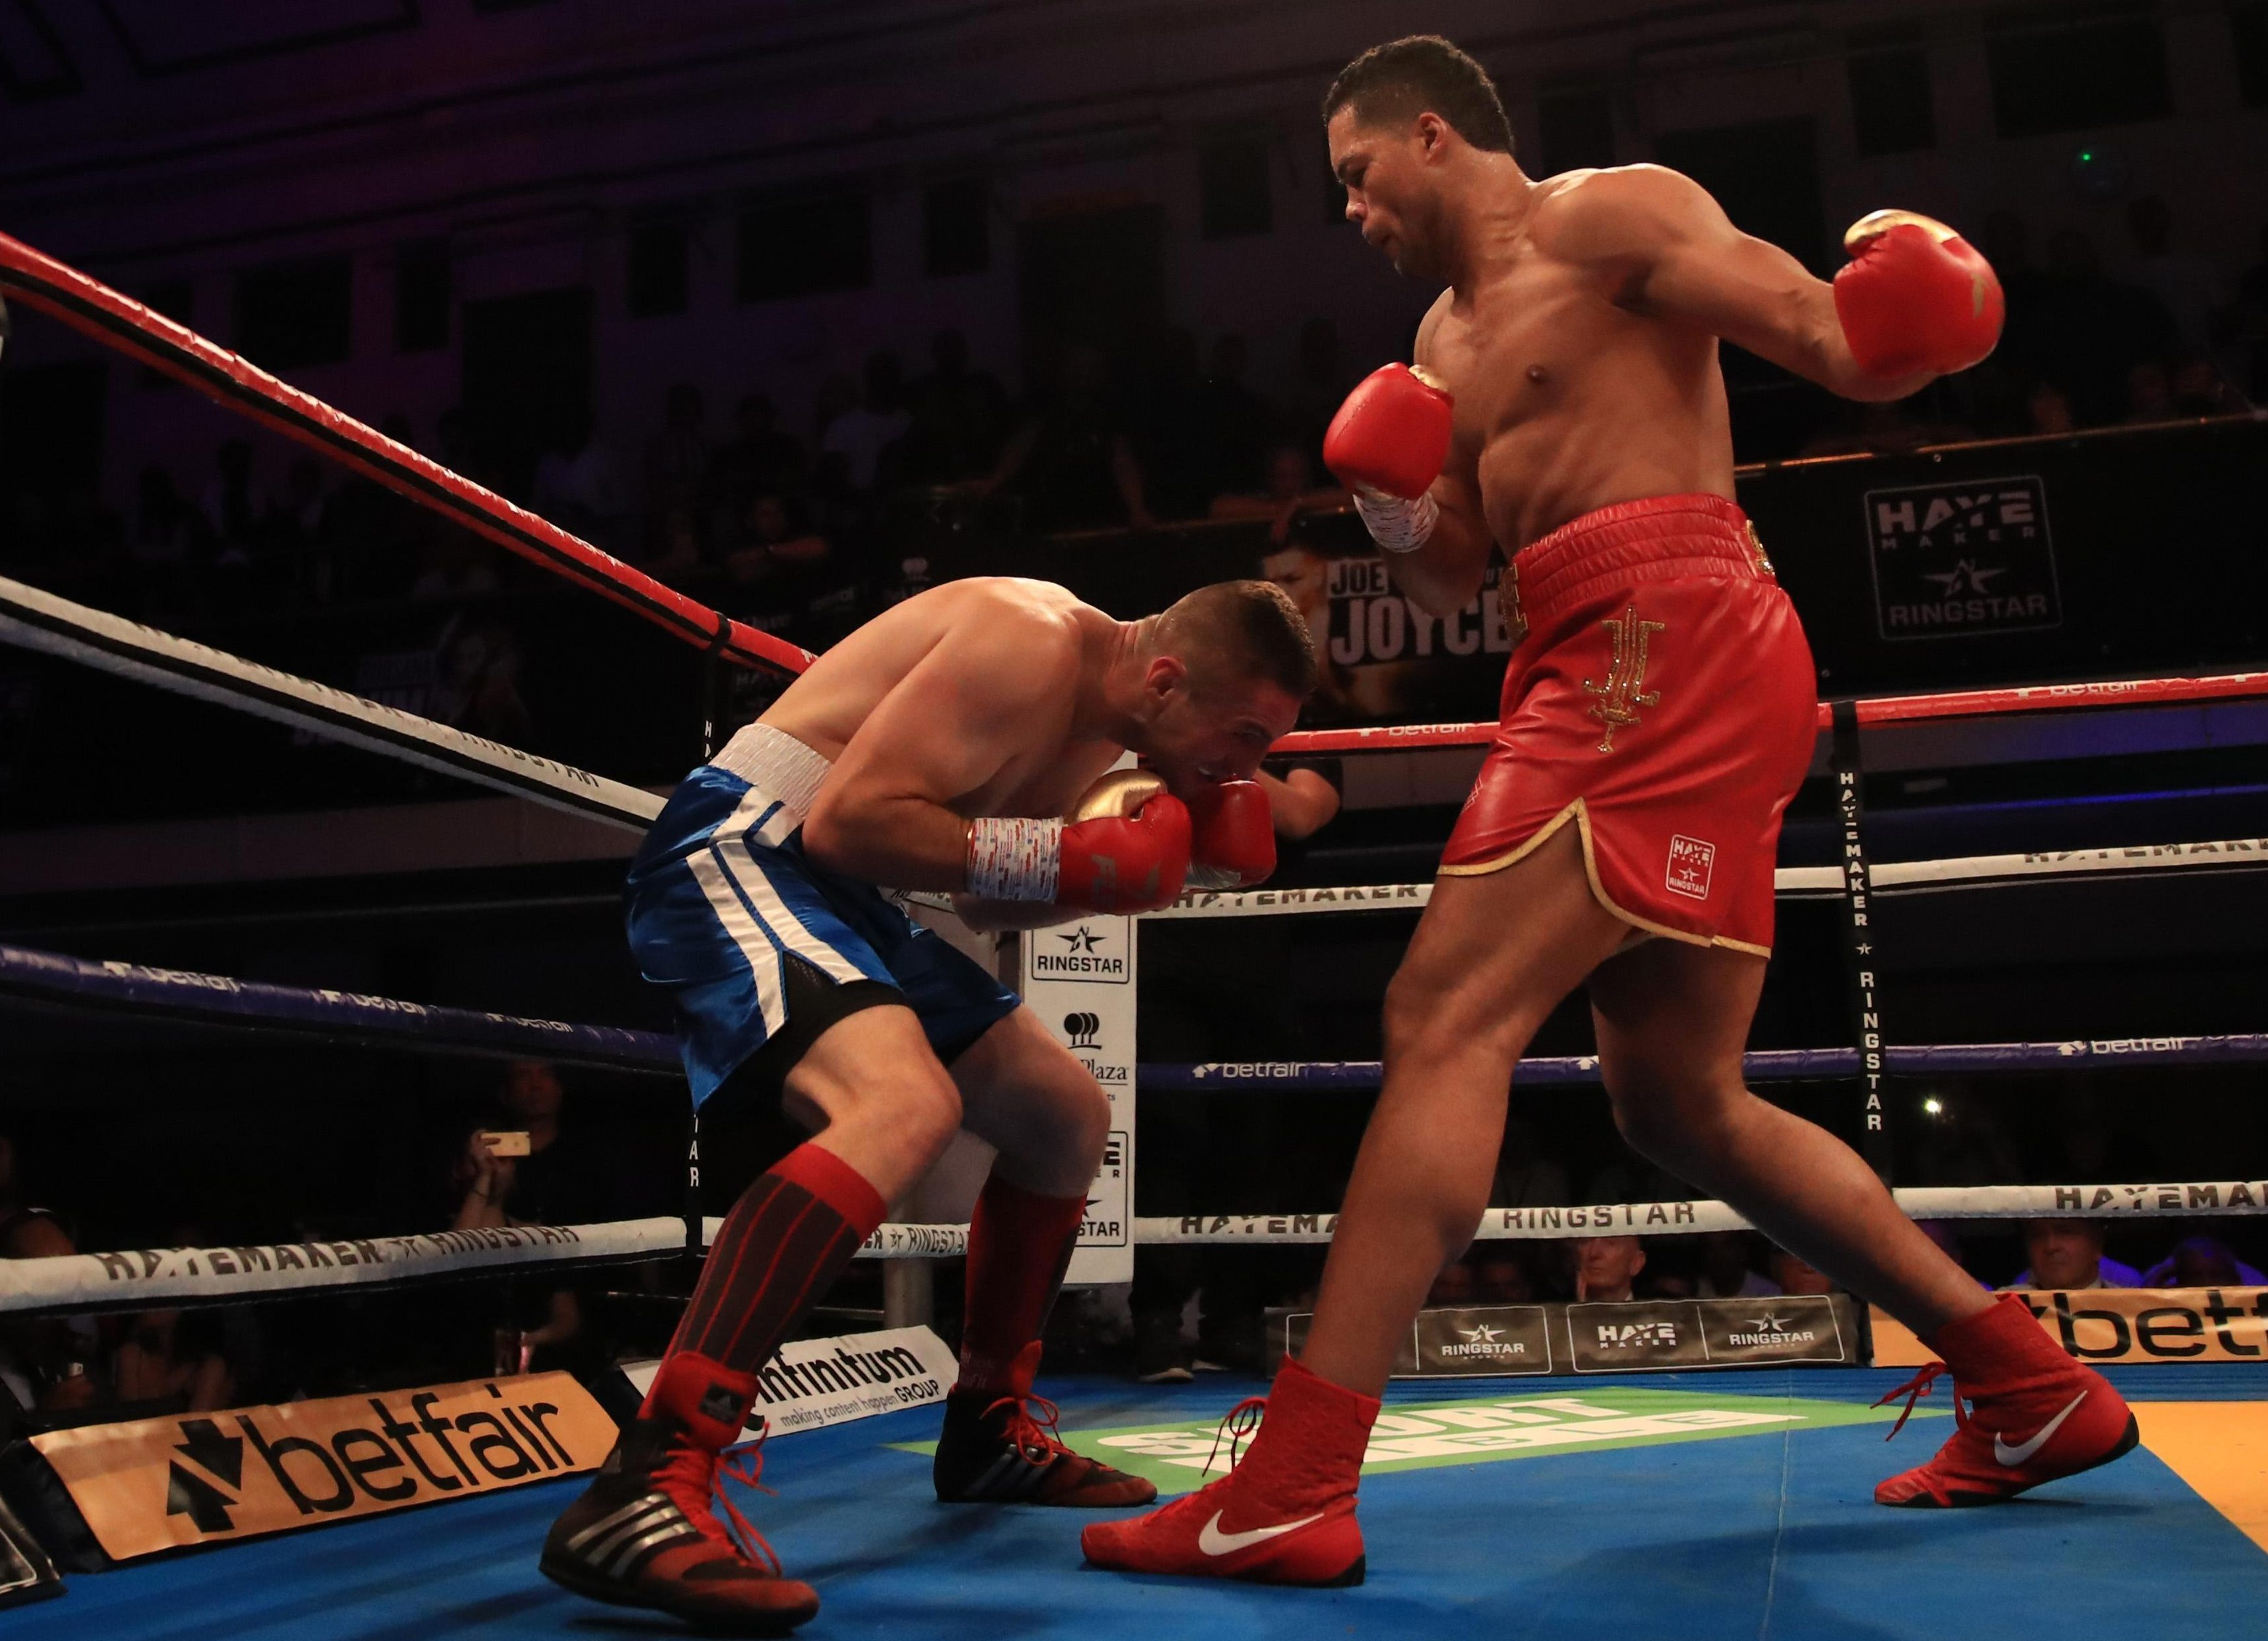 Grazing Joe Joyce hooks skimmed the head of Ivica Bacurin but he refused to beat the count